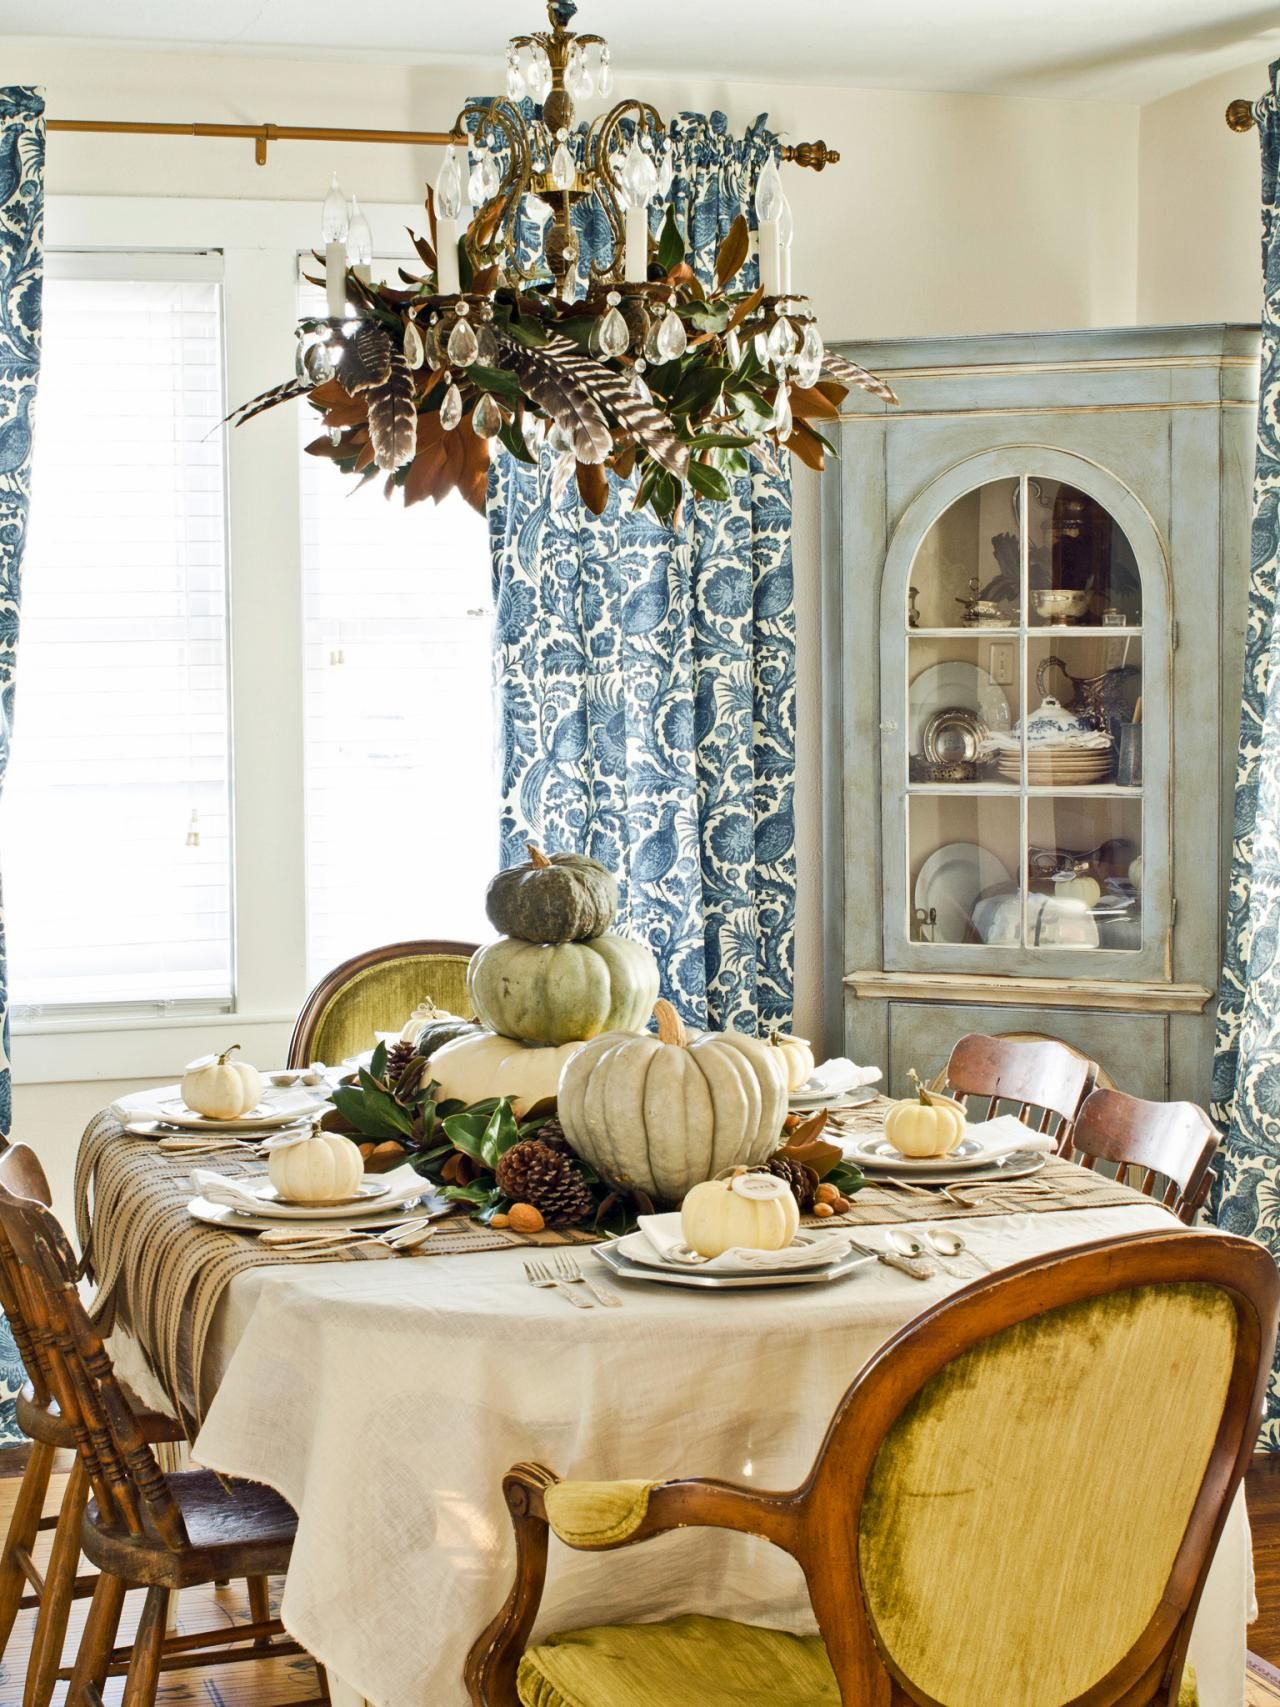 13 Rustic Thanksgiving Table Setting Ideas